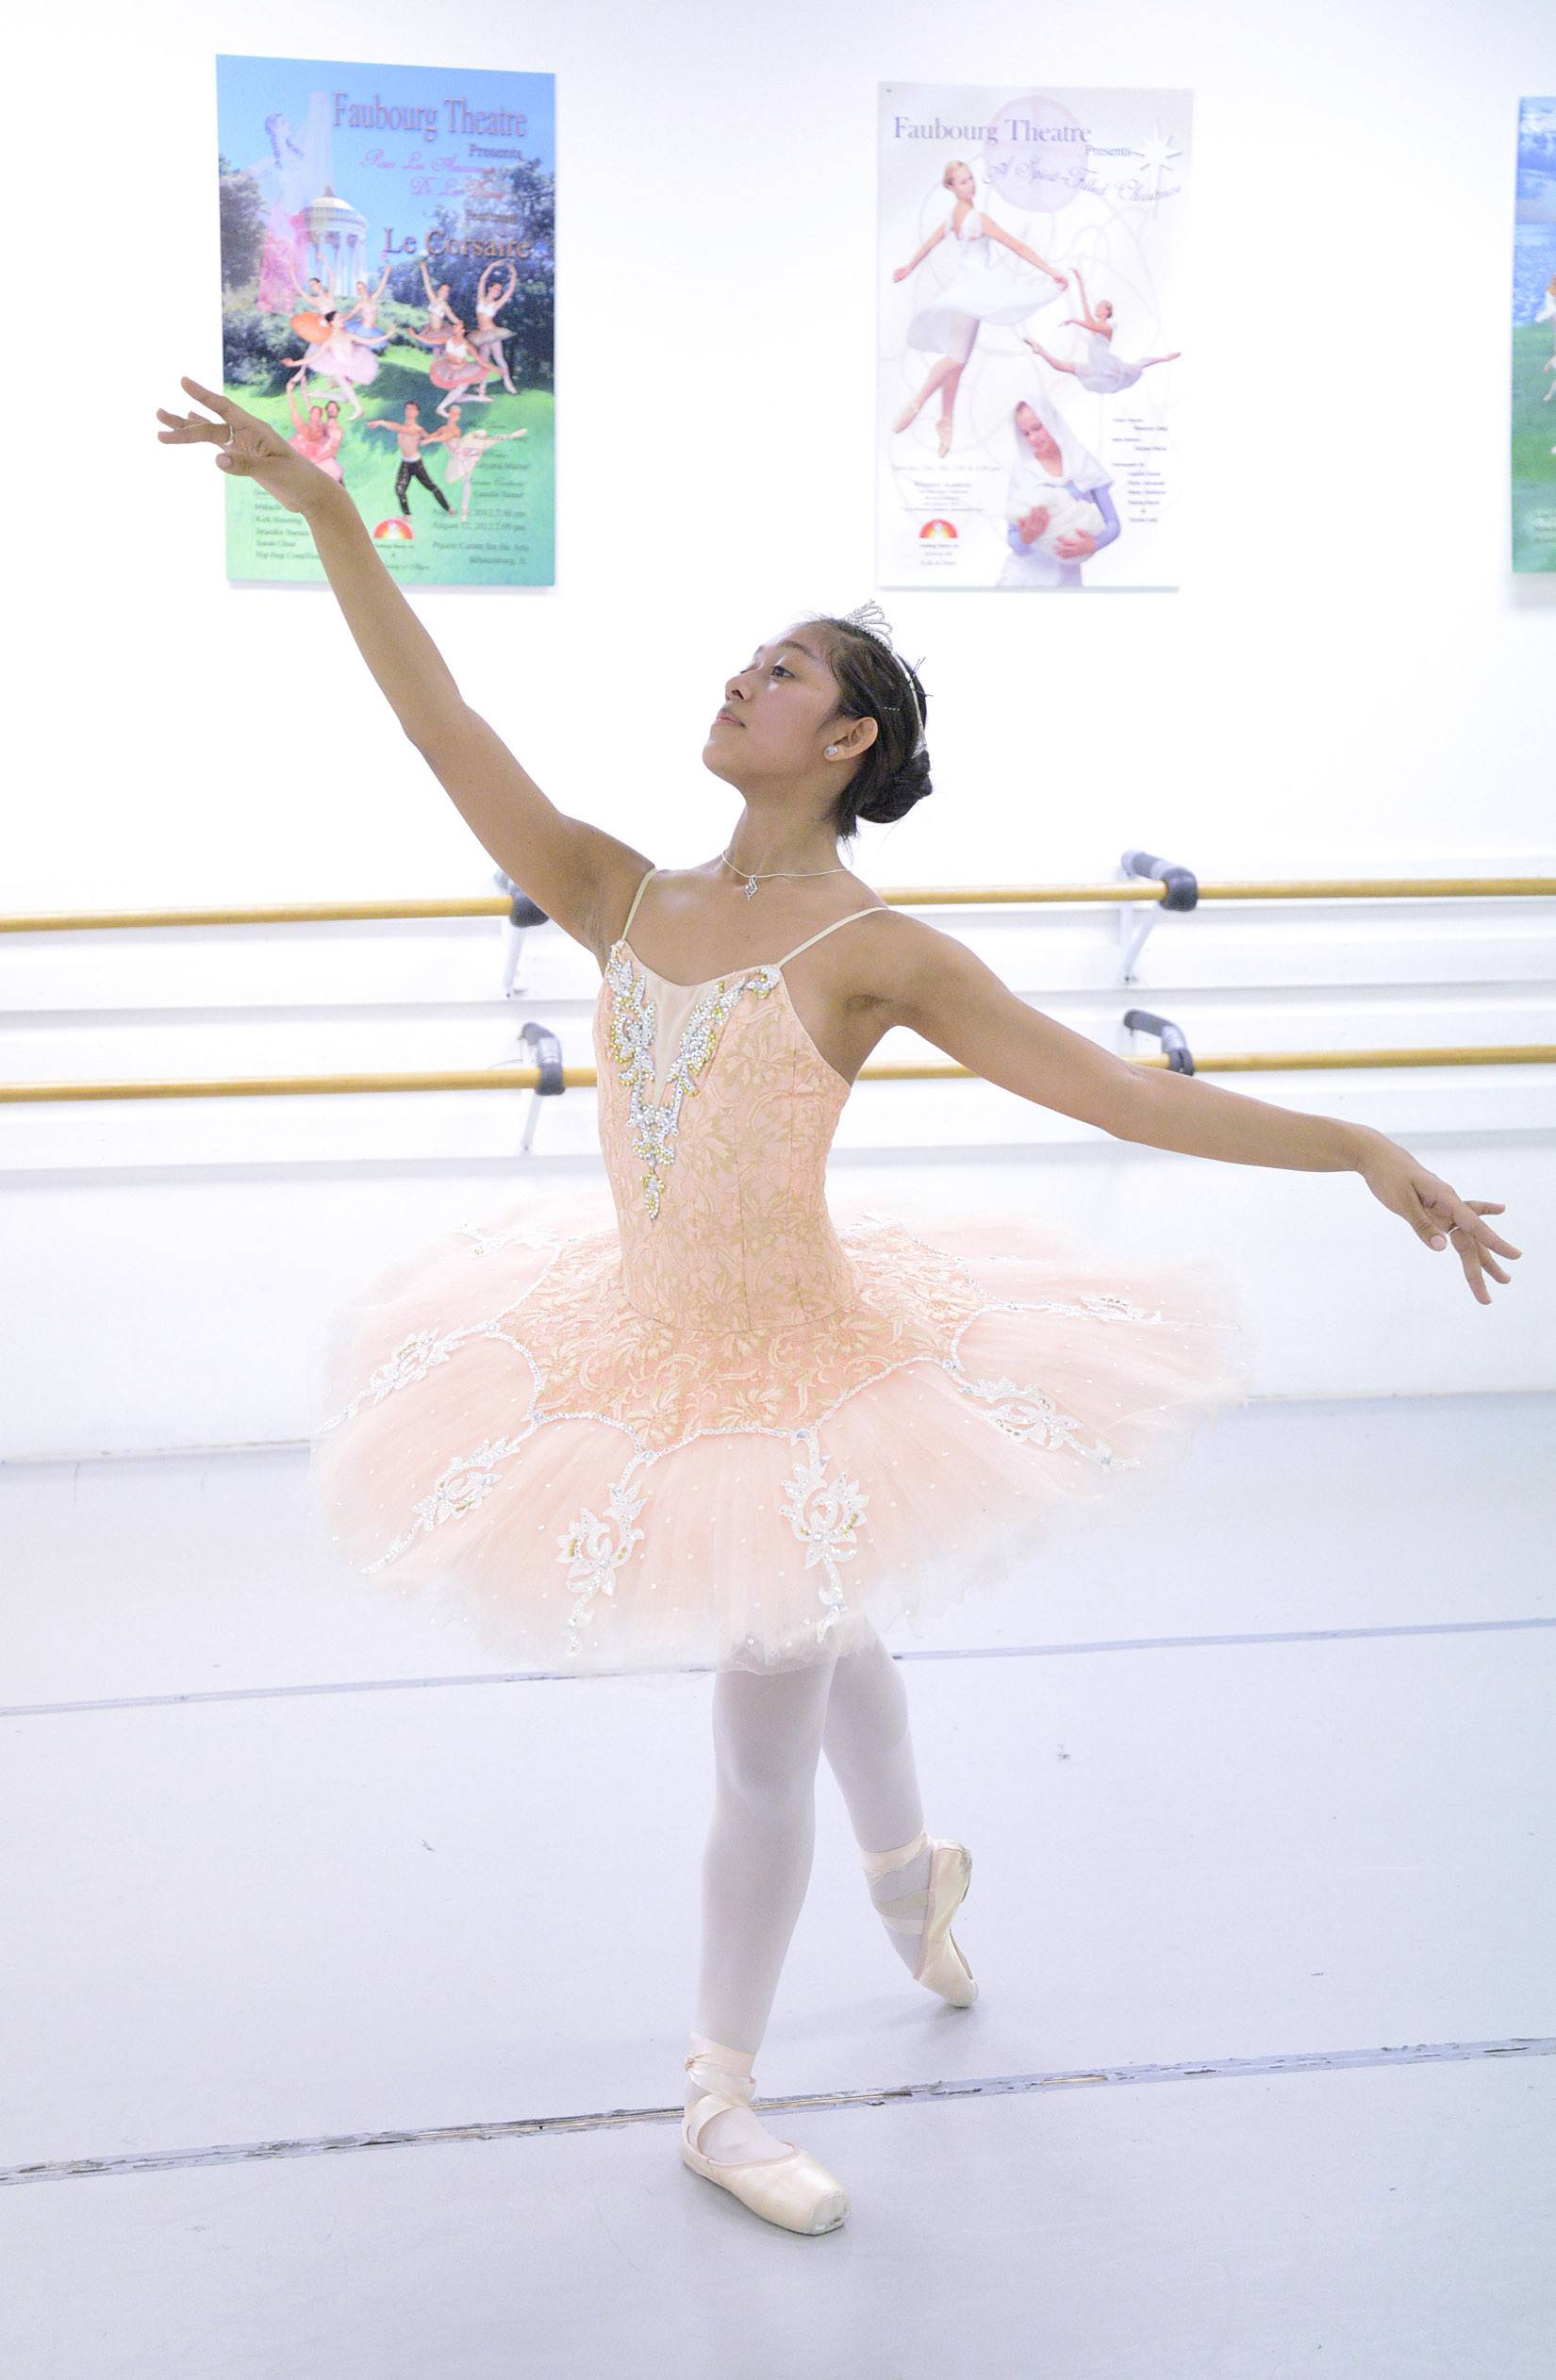 Dancer Jasmine Getz of Sleepy Hollow practices at Faubourg School of Ballet in Hanover Park. Getz won two gold medals at the International Dance Organization's world championships held in December in Poland.